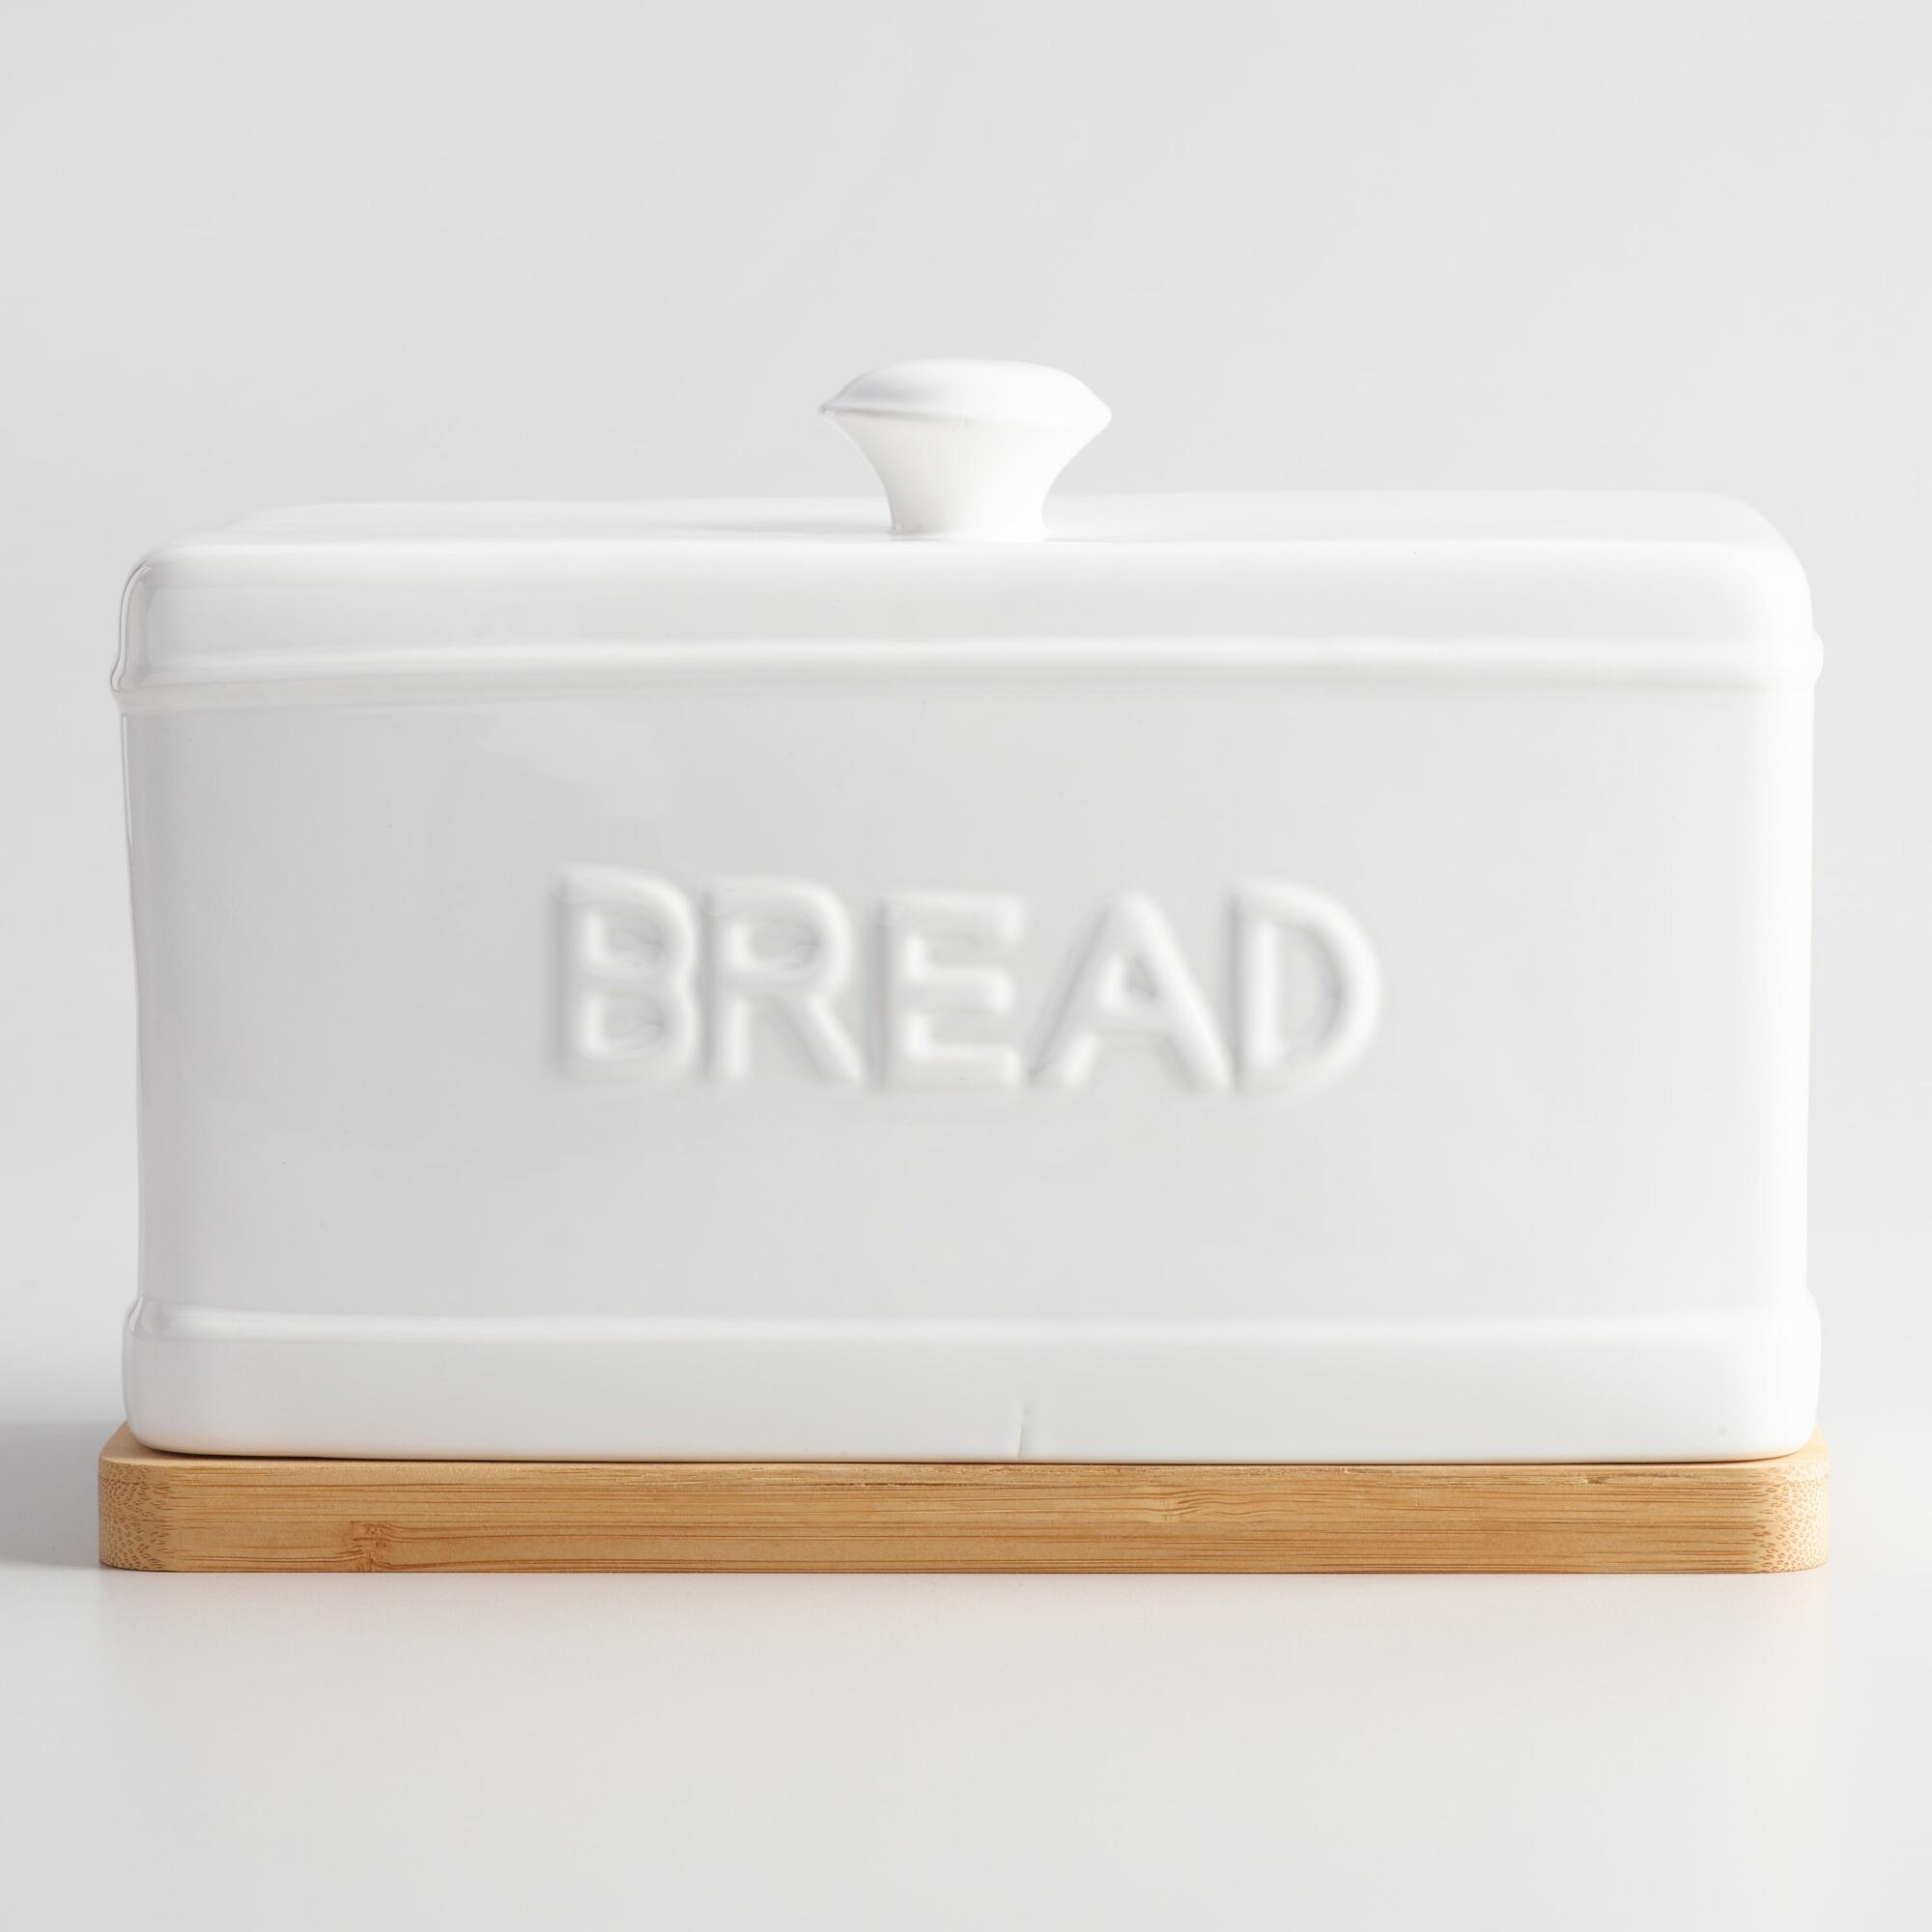 Ceramic Bread Box With Wood Cutting Board World Market